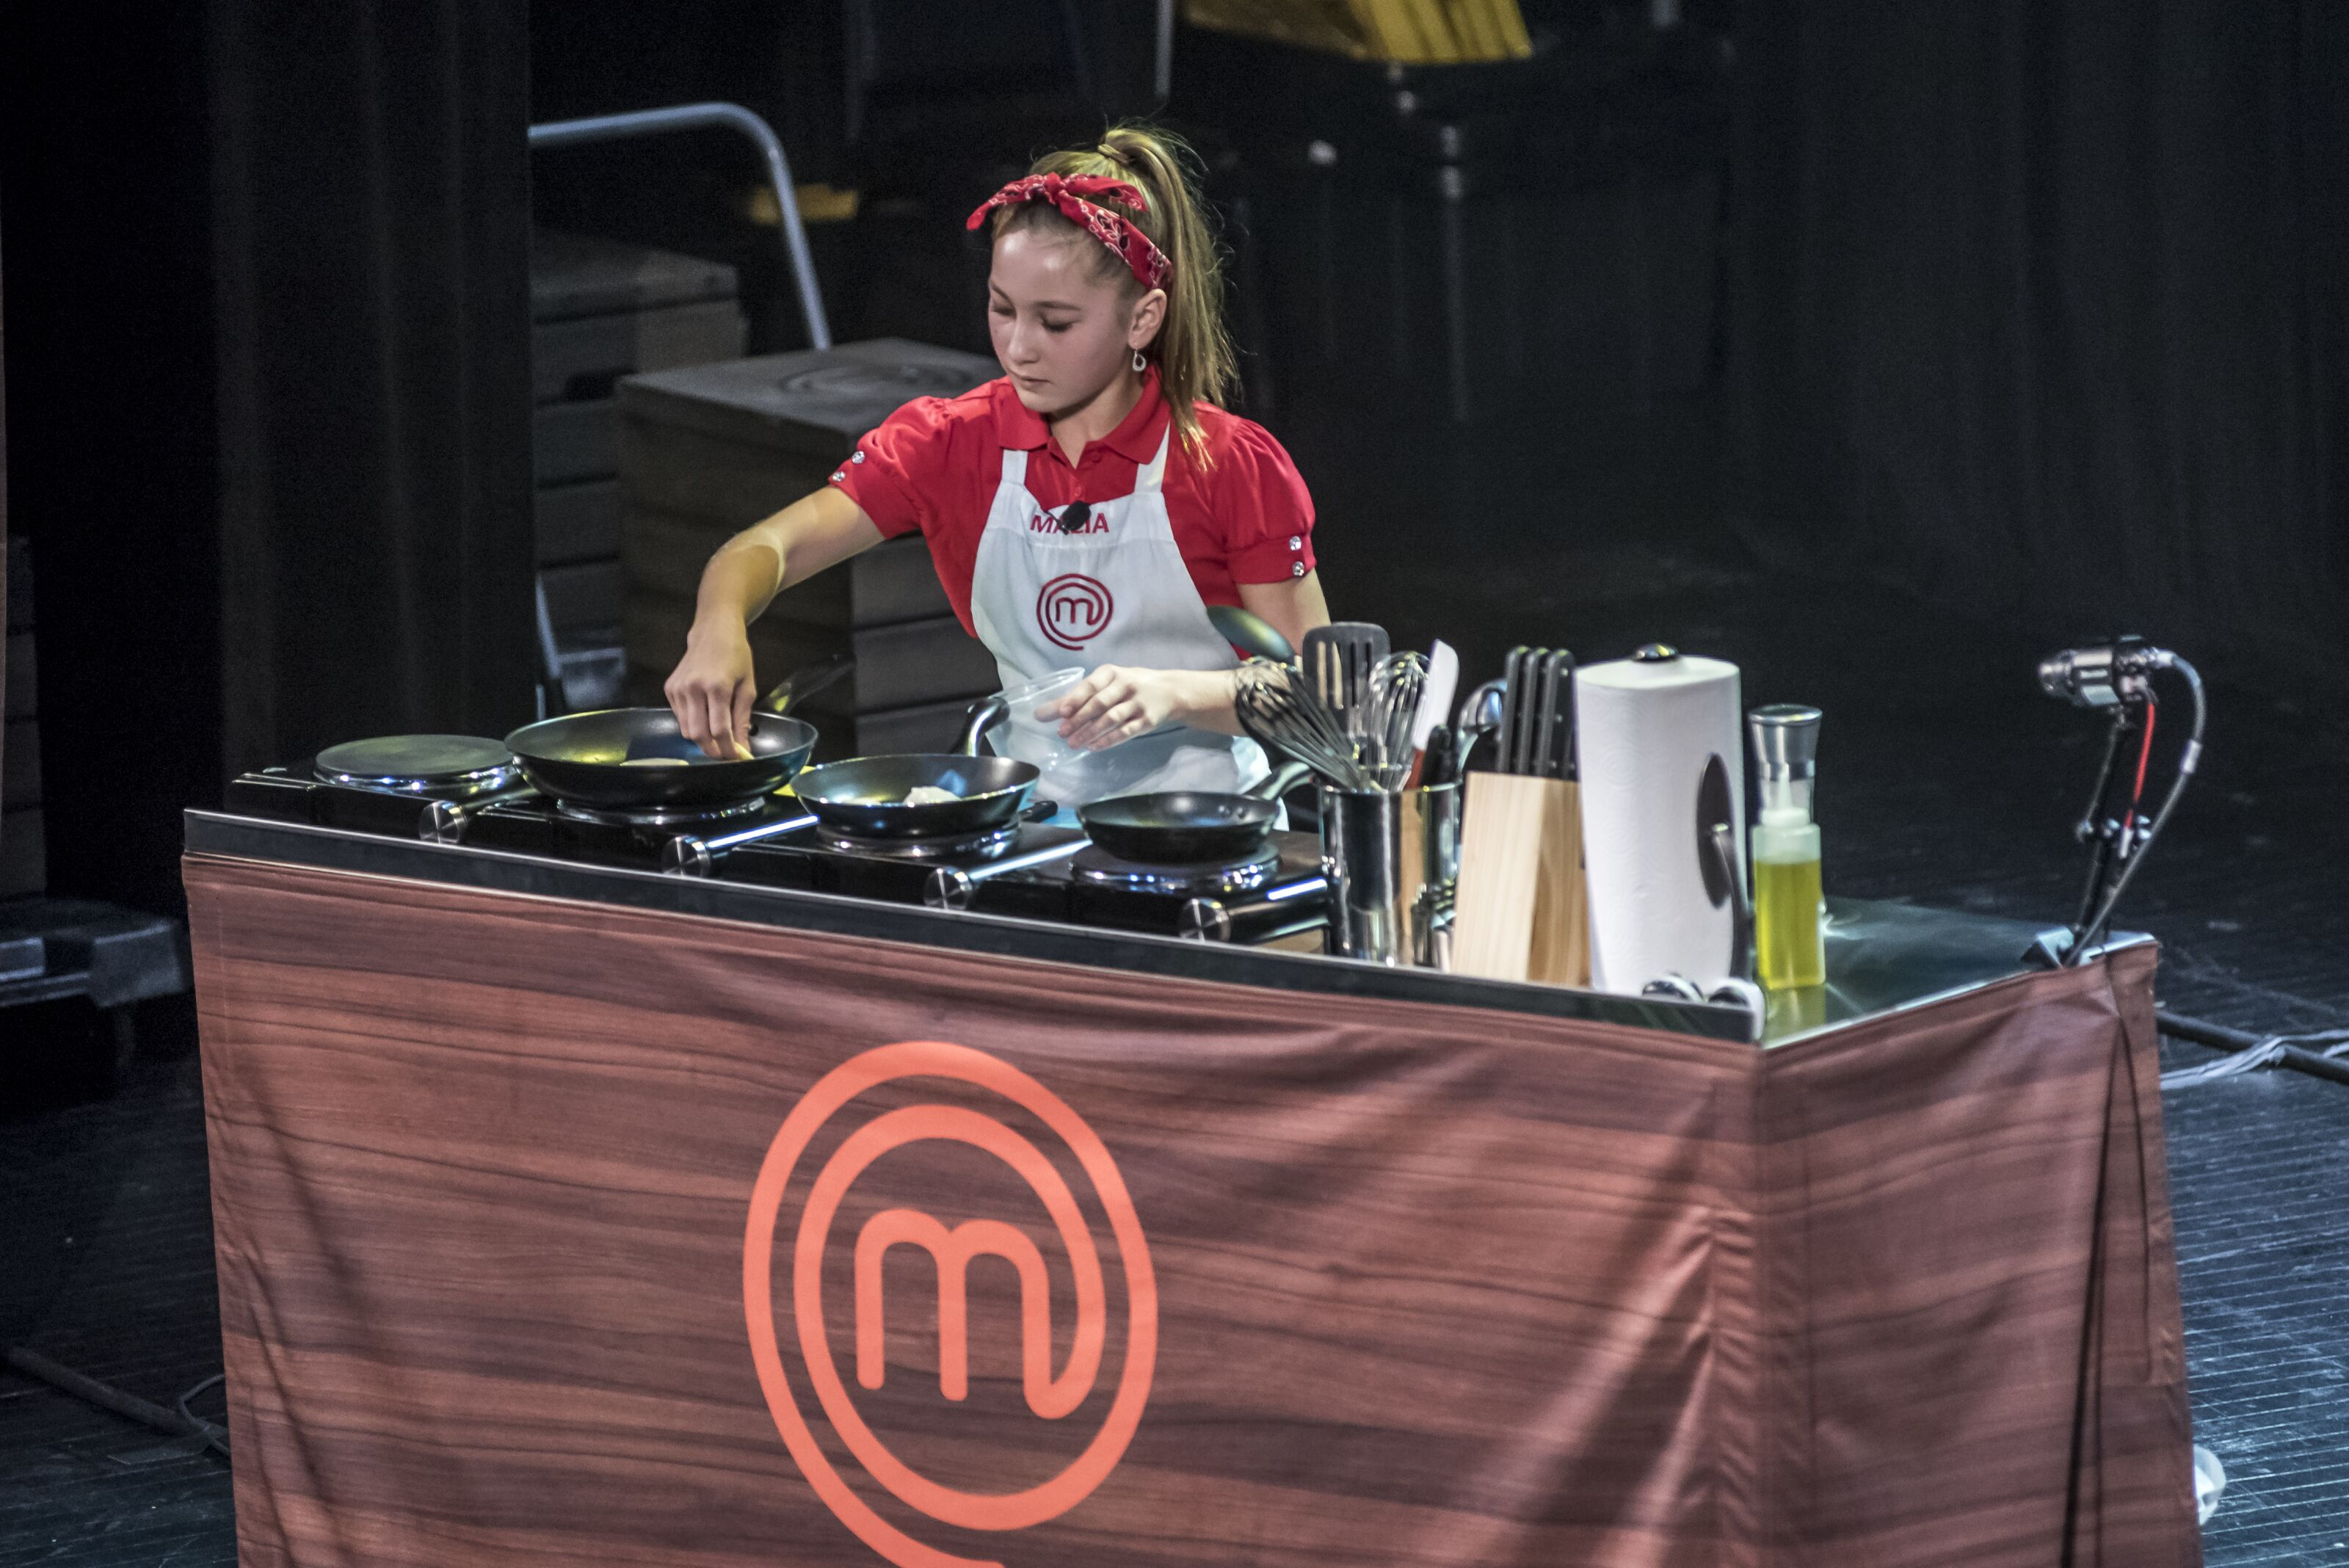 MasterChef Junior Live! heads back on tour and Malia Brauer wants you to go!